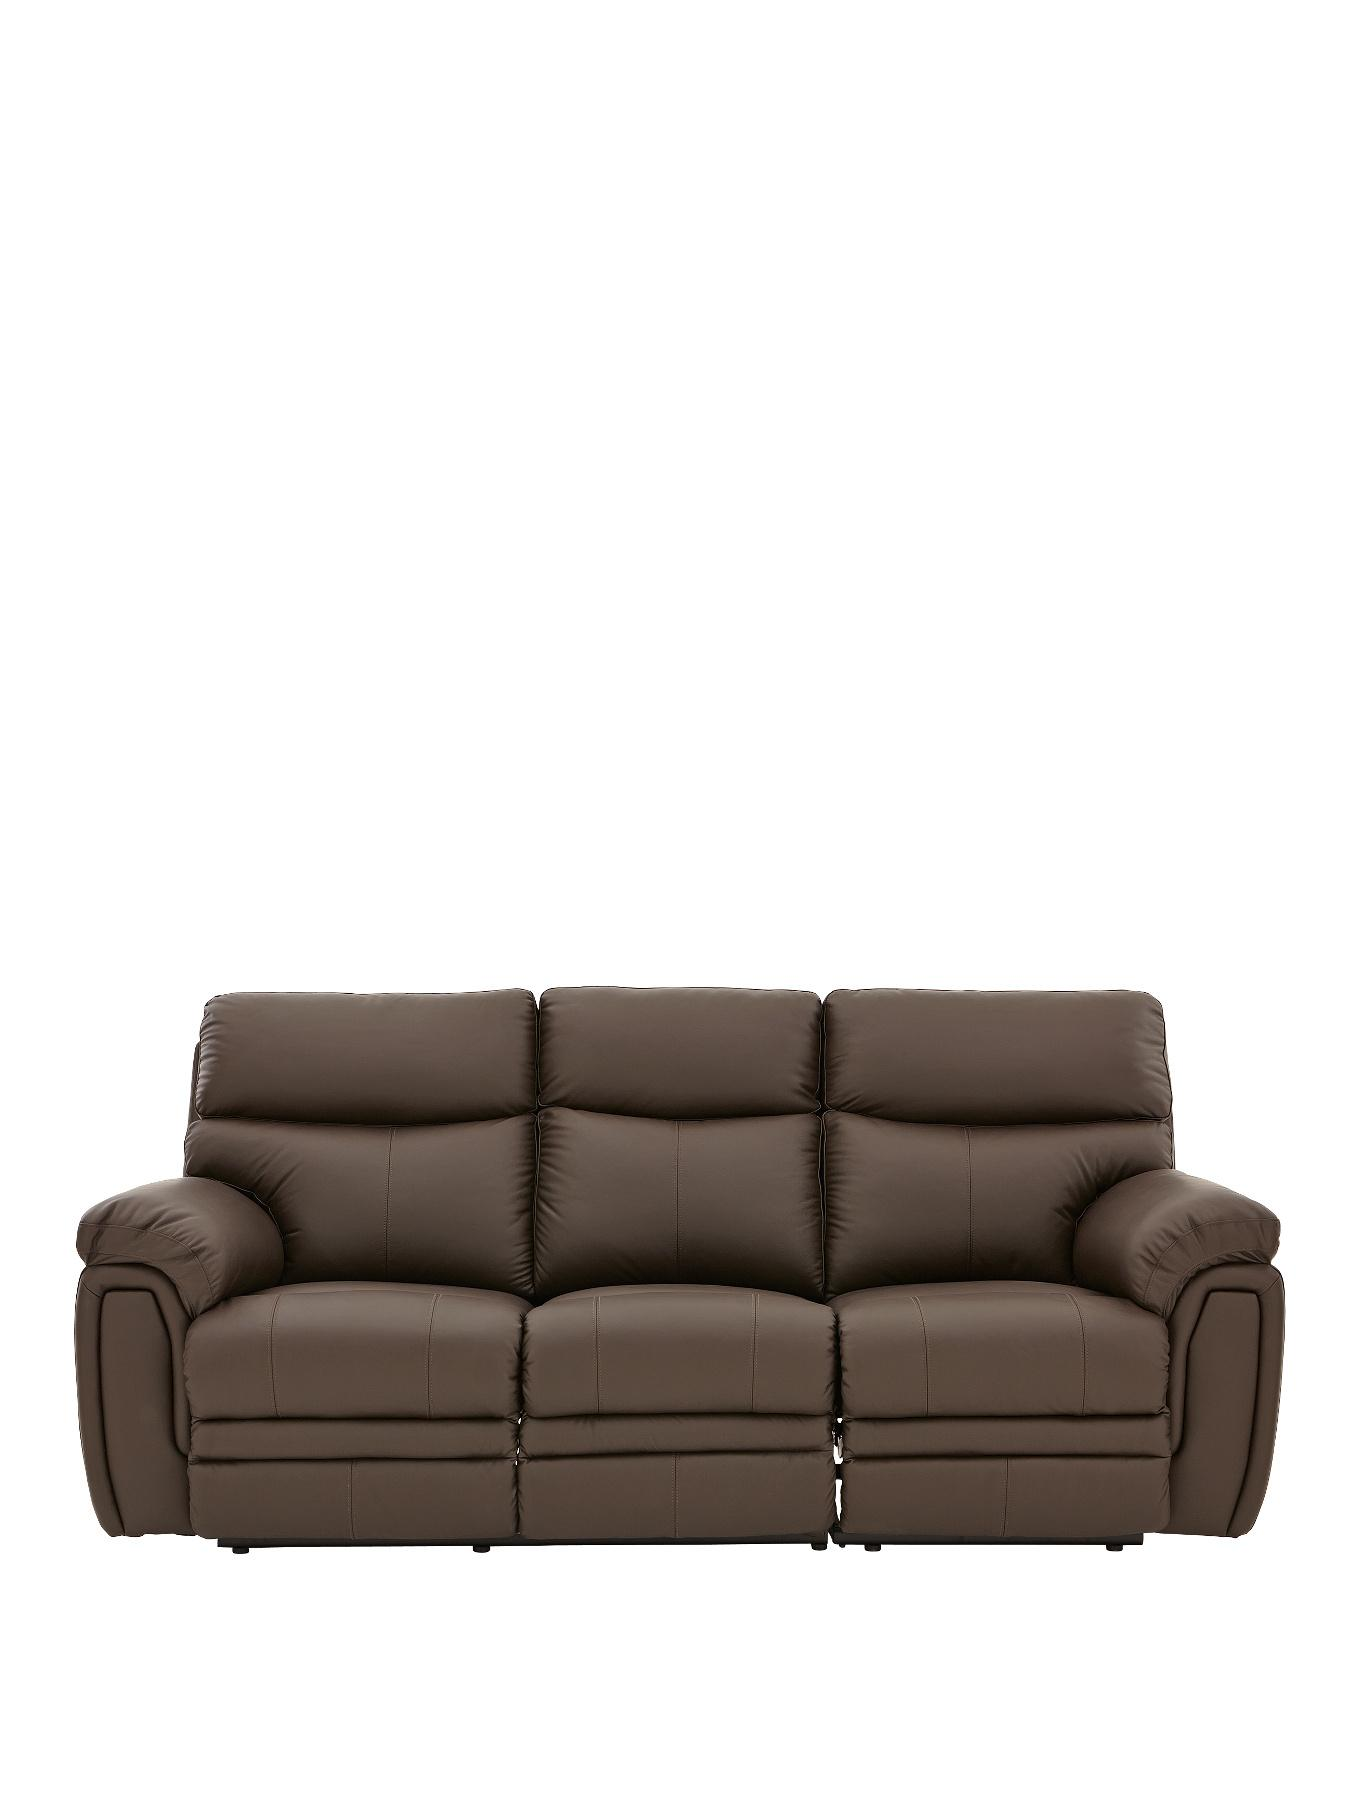 leather sofas tampa sofa with and fabric recliner shop for cheap save online